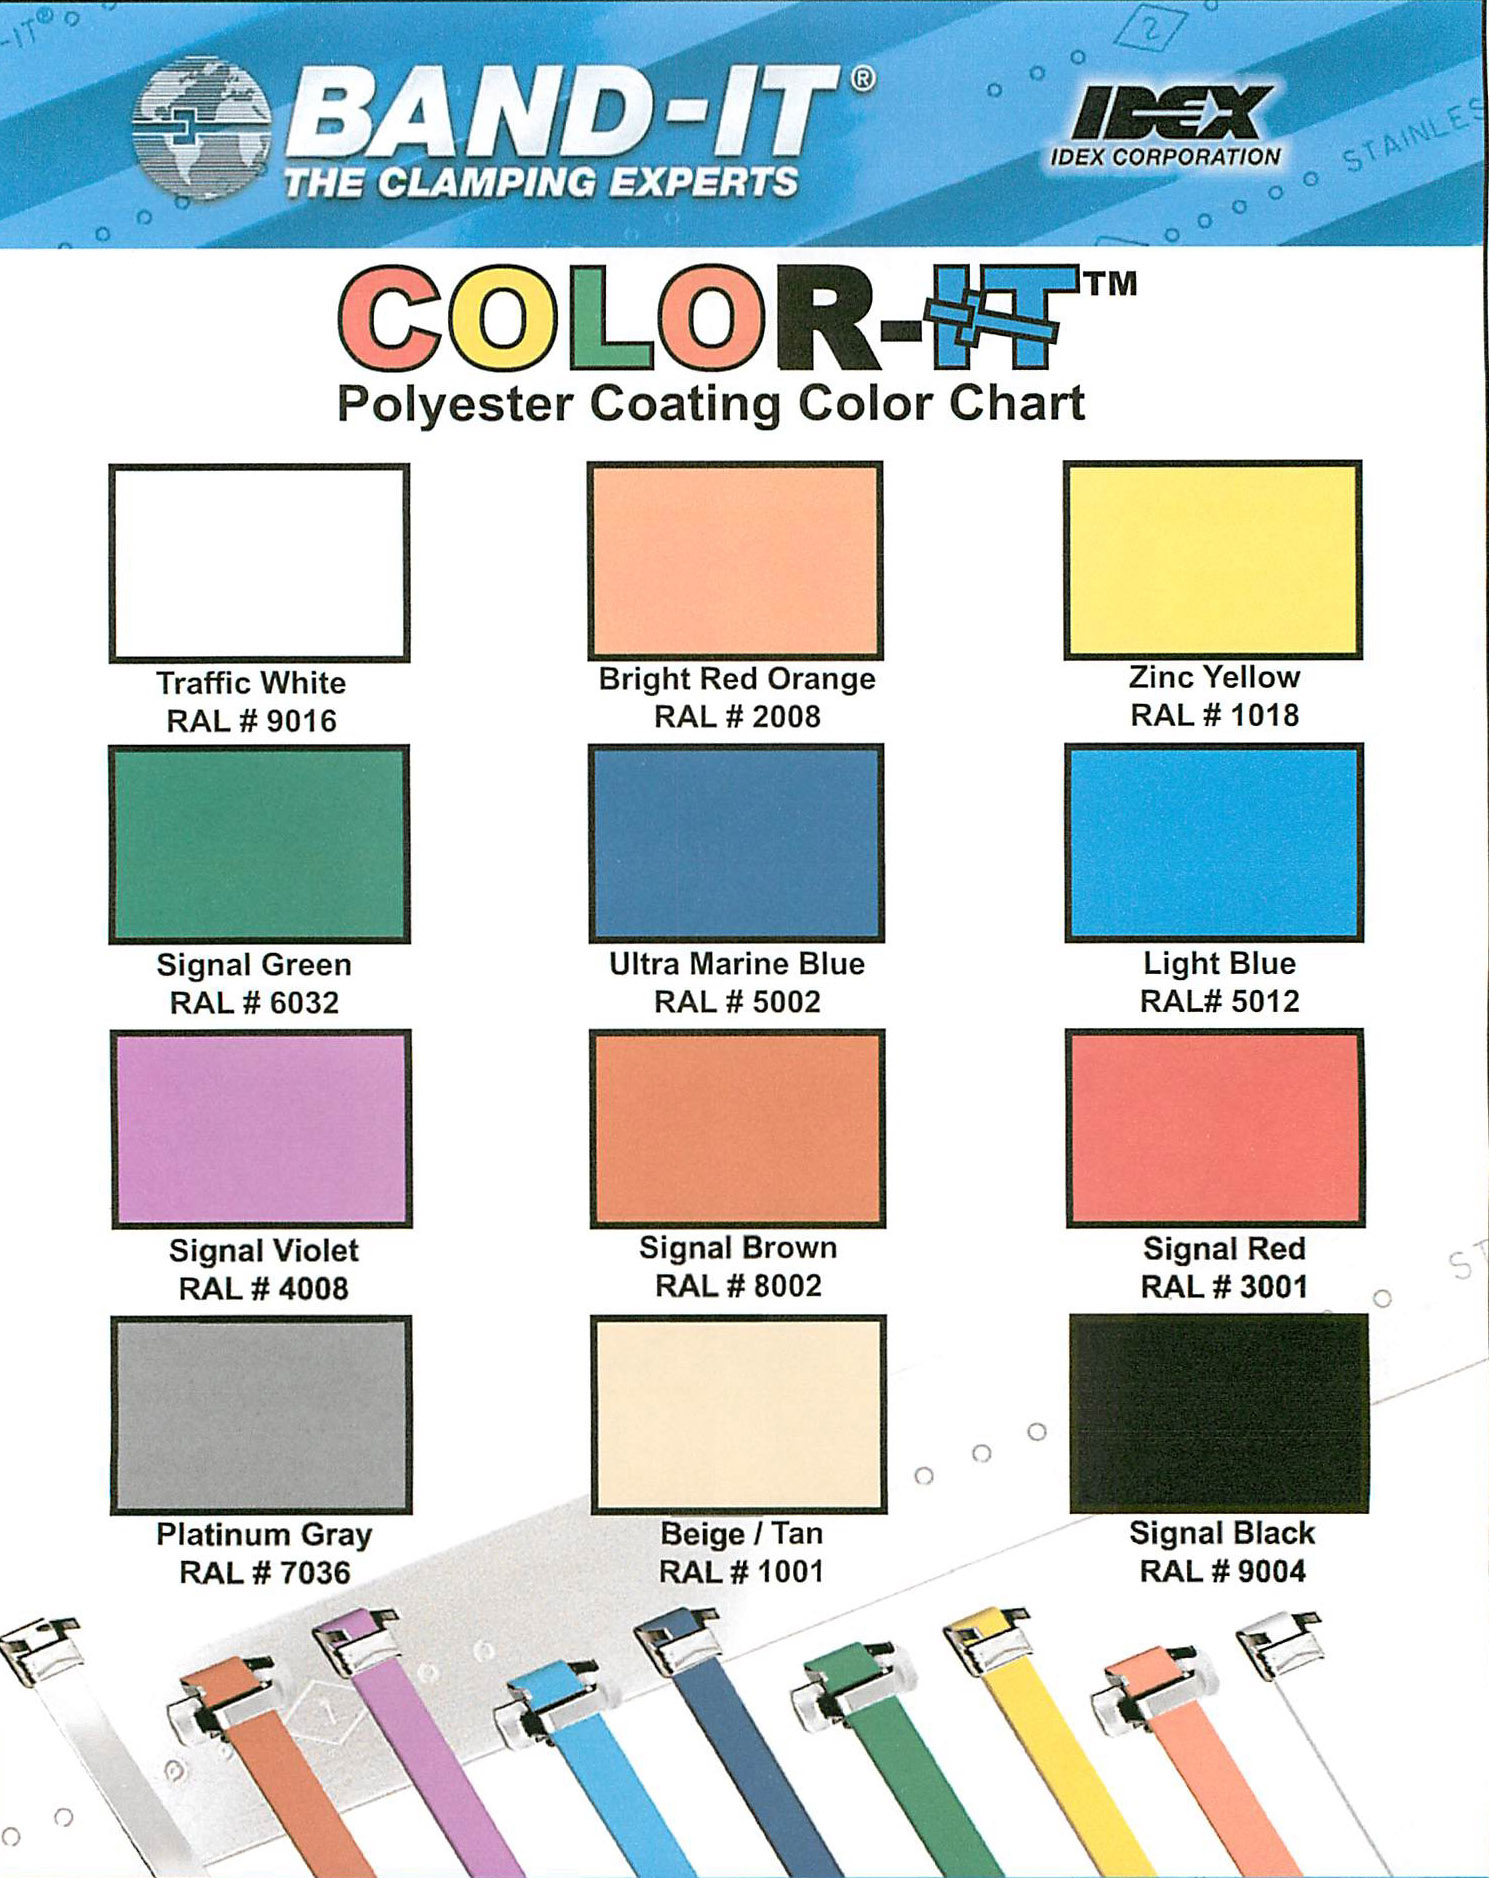 Band it color it steel banding chart band it applications band it stainless steel banding has a variety of custom color coatings to match you job site color it banding can also be used for identification purposes nvjuhfo Choice Image